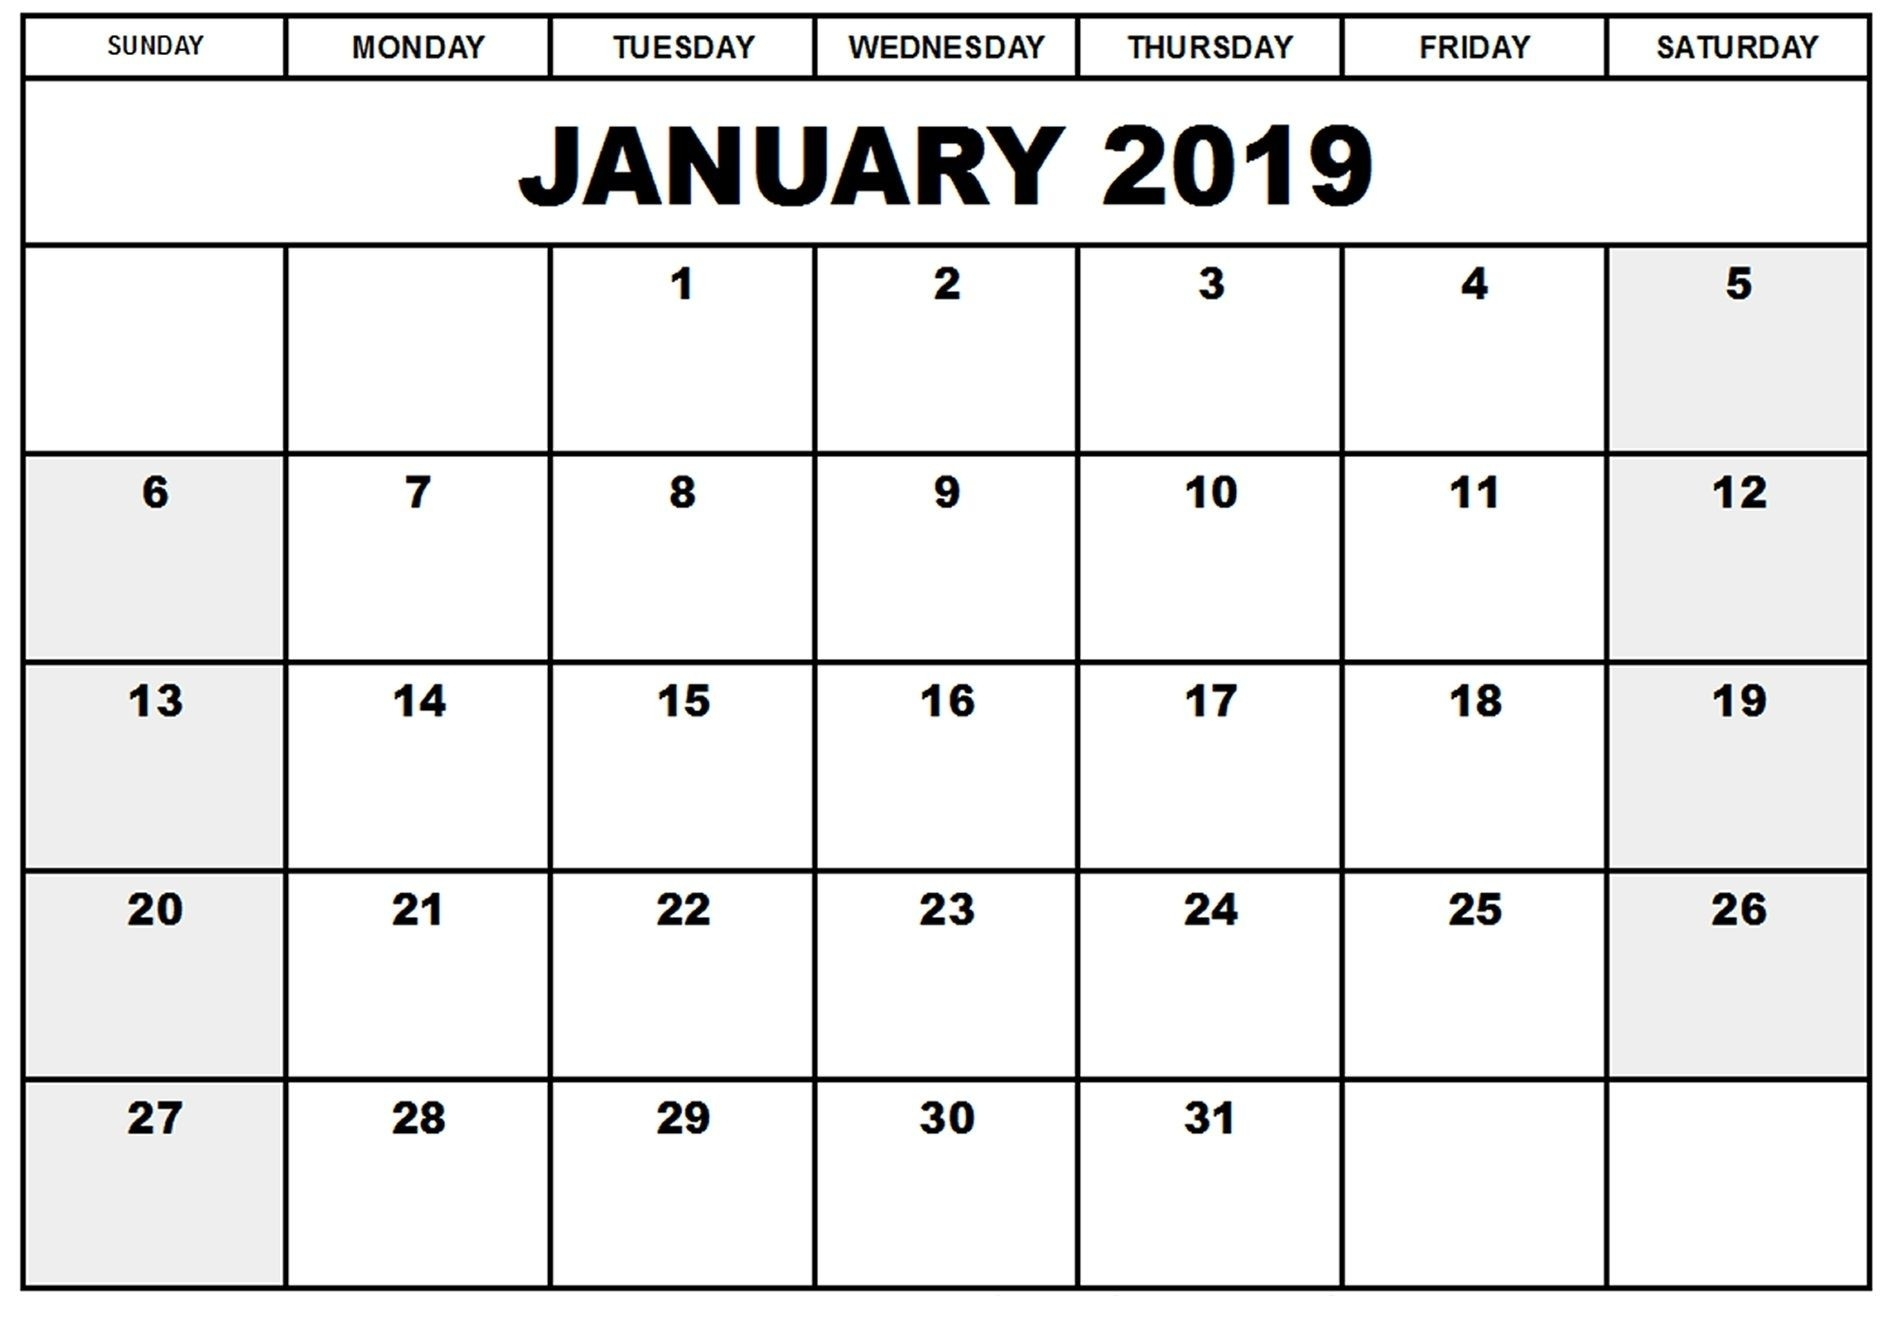 January 2019 Calendar Printable Daily #january2019Calendar-Excel Countdown Calendar Template